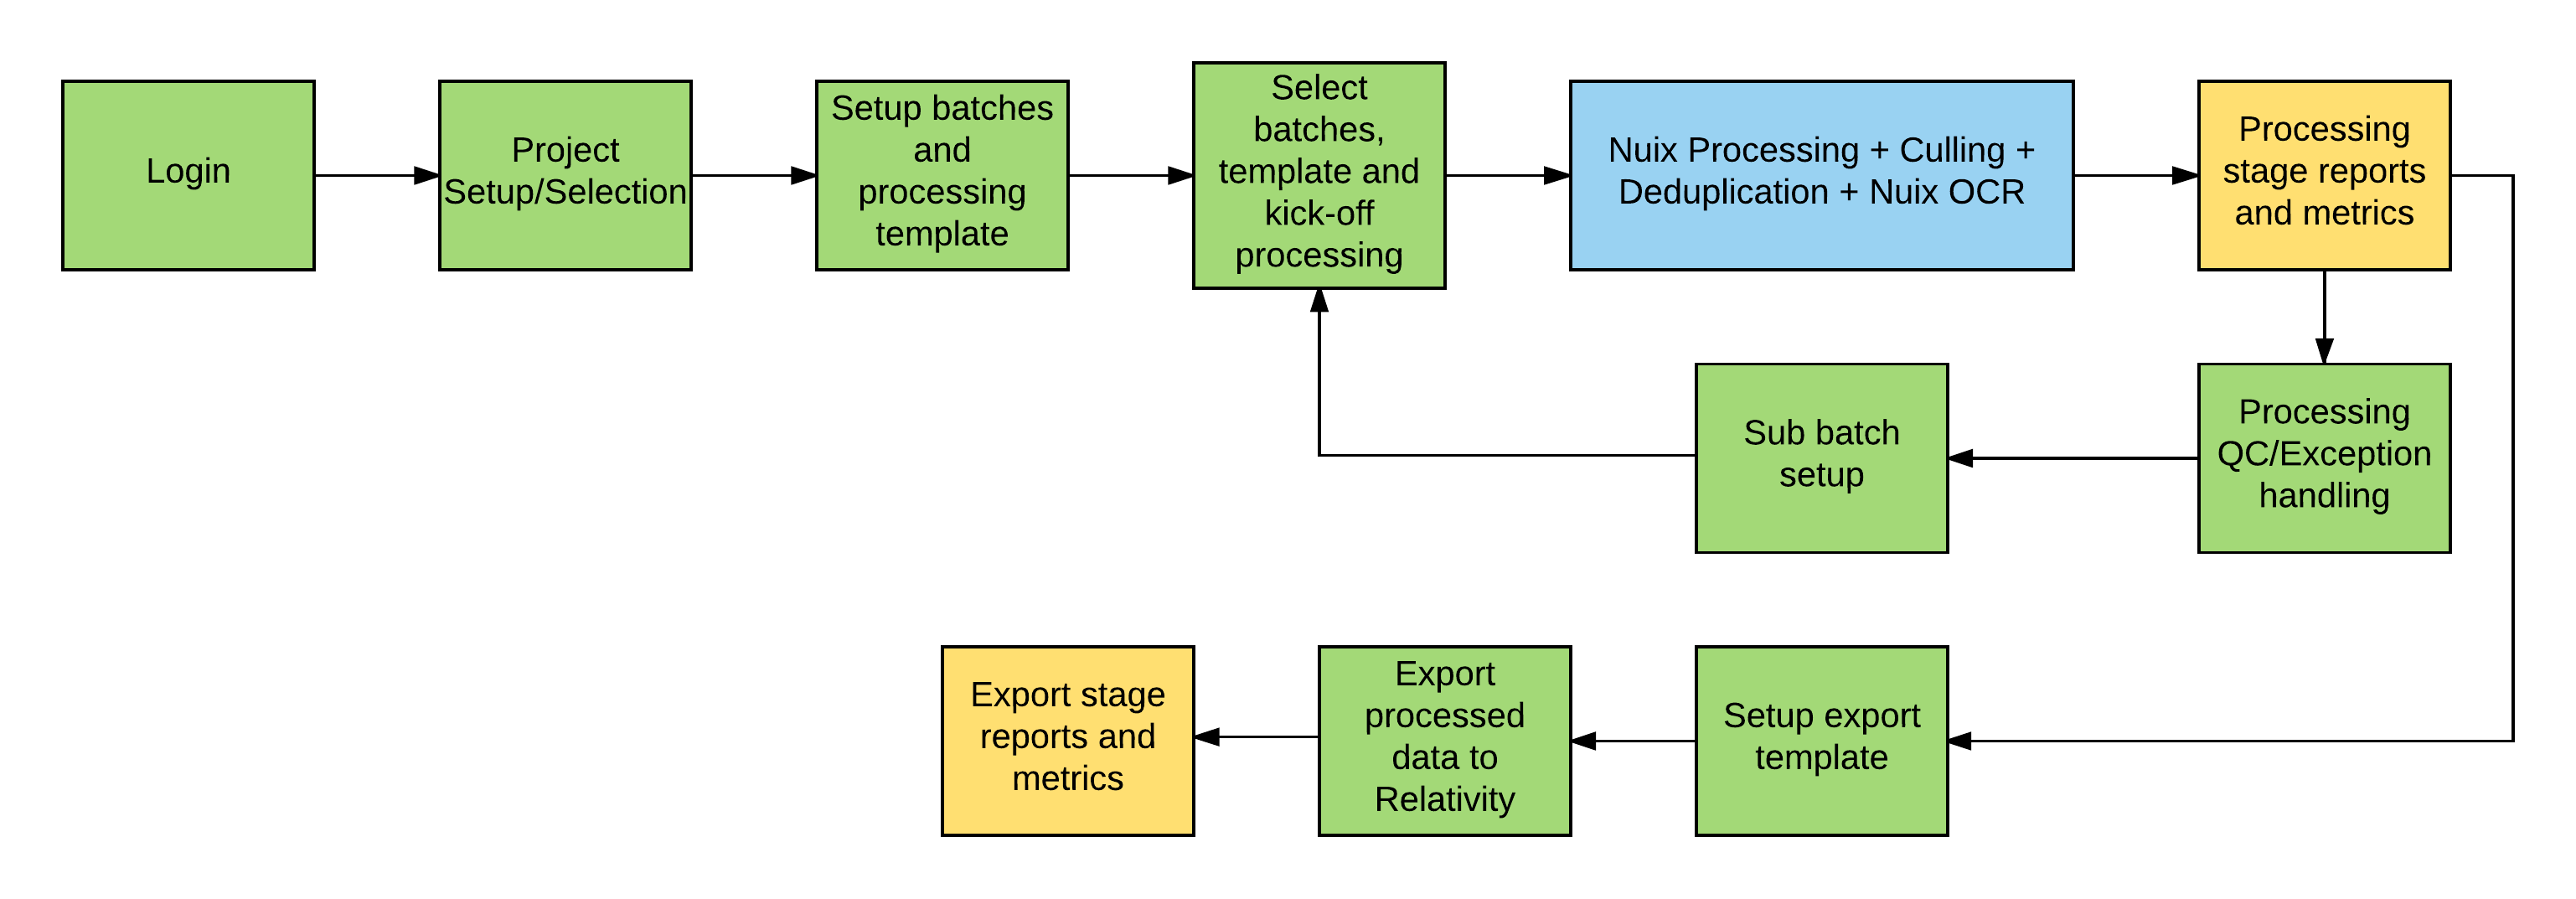 ReNu high level process workflow